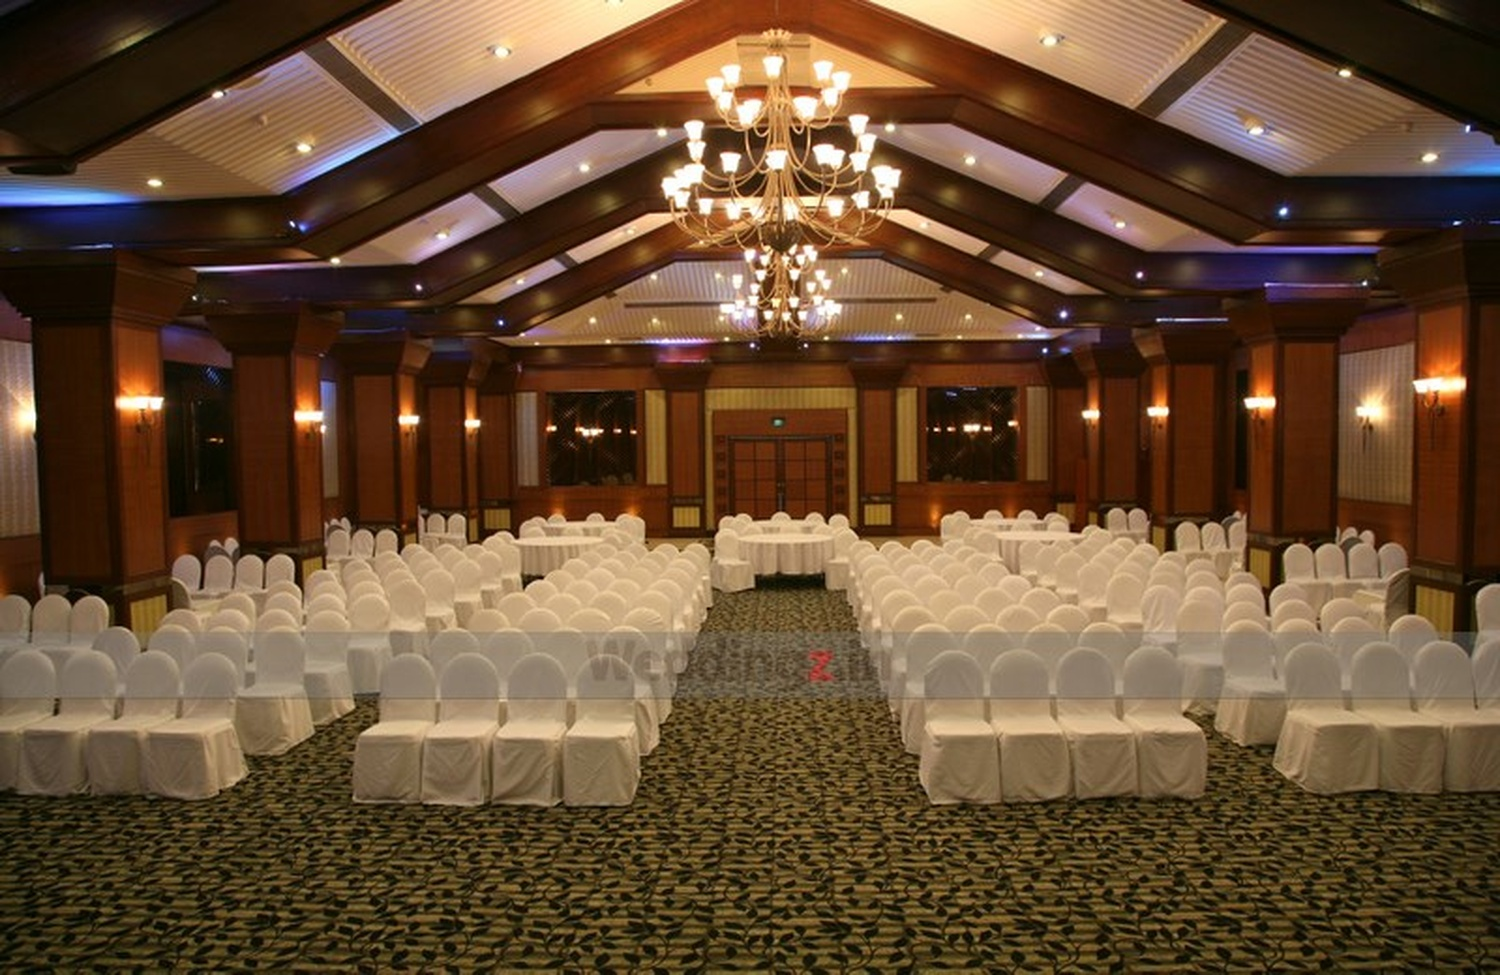 The Atria Hotel Cunningham Road Bangalore Banquet Hall Wedding